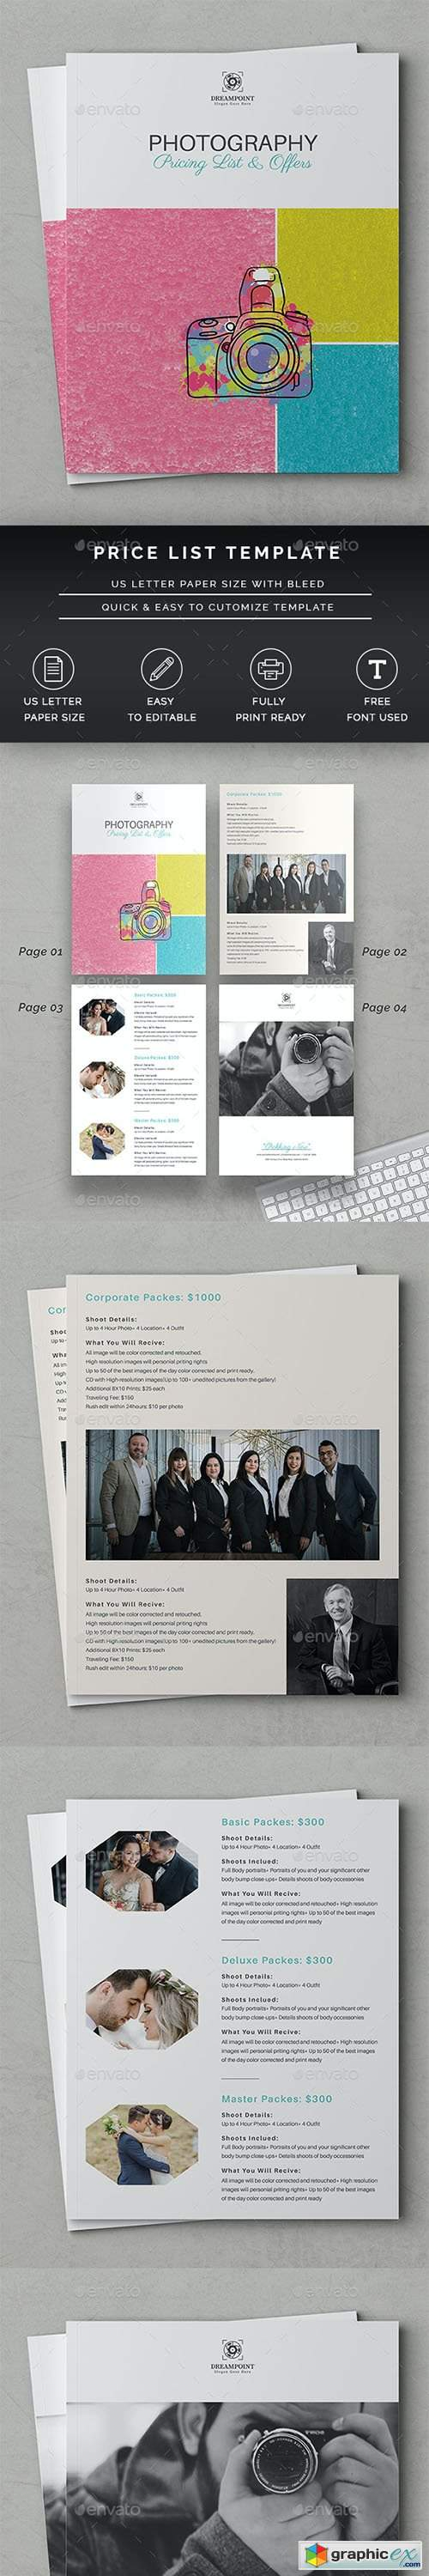 Photography Price List Template 26680958